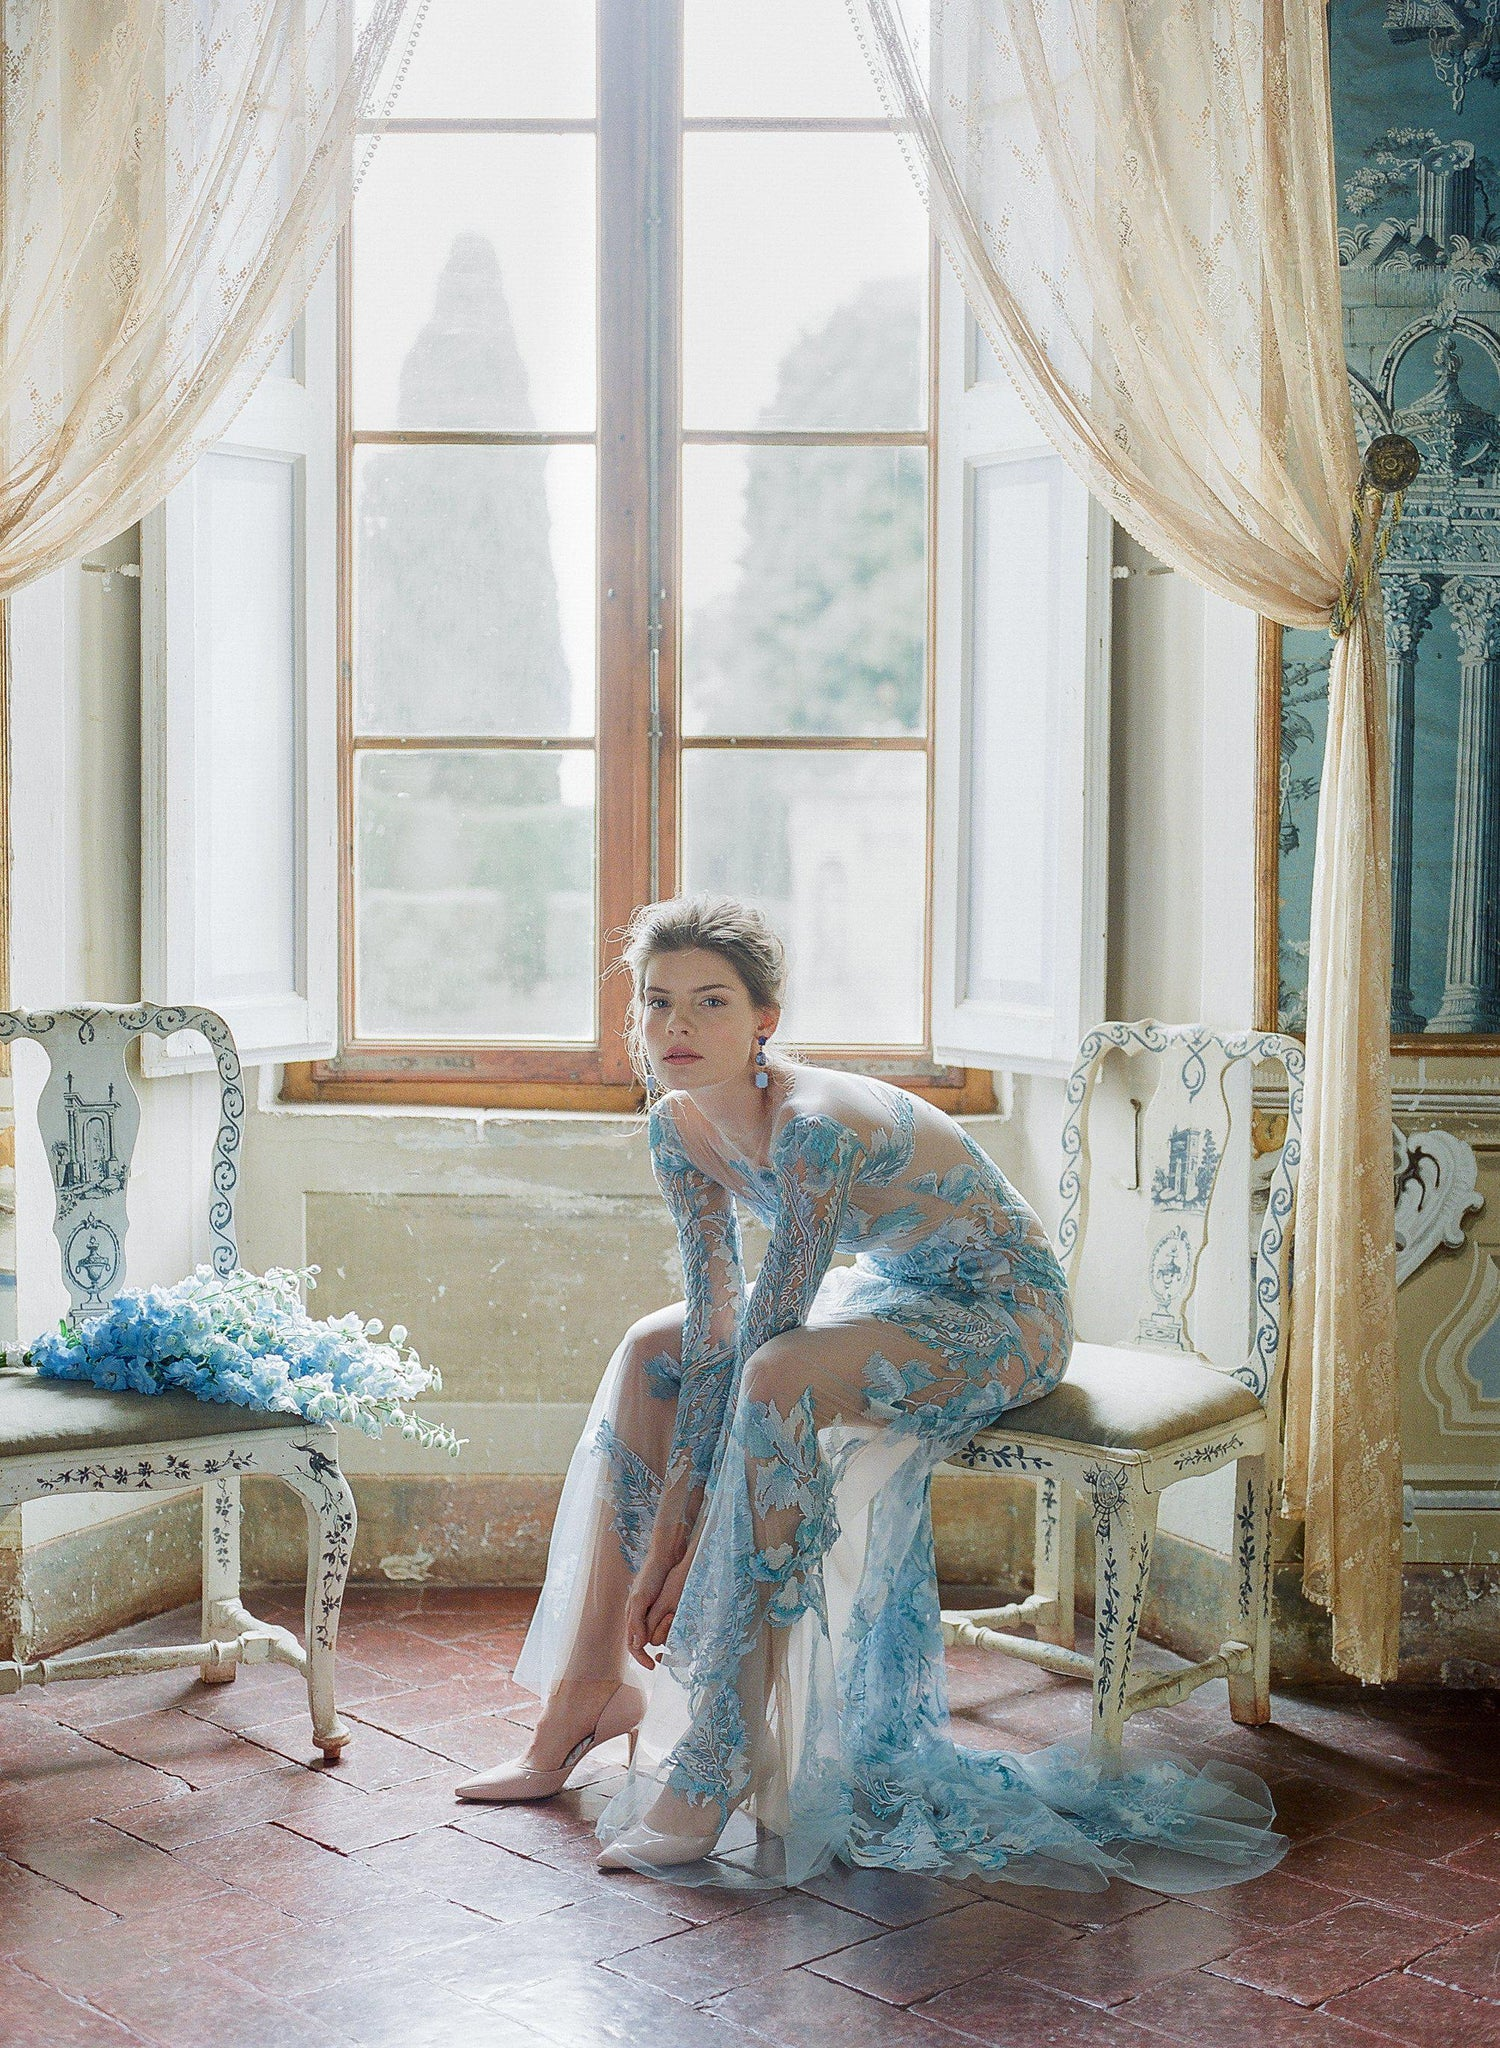 women sitting in chair wearing blue tulle dress at Villa di geggiano Siena Italy